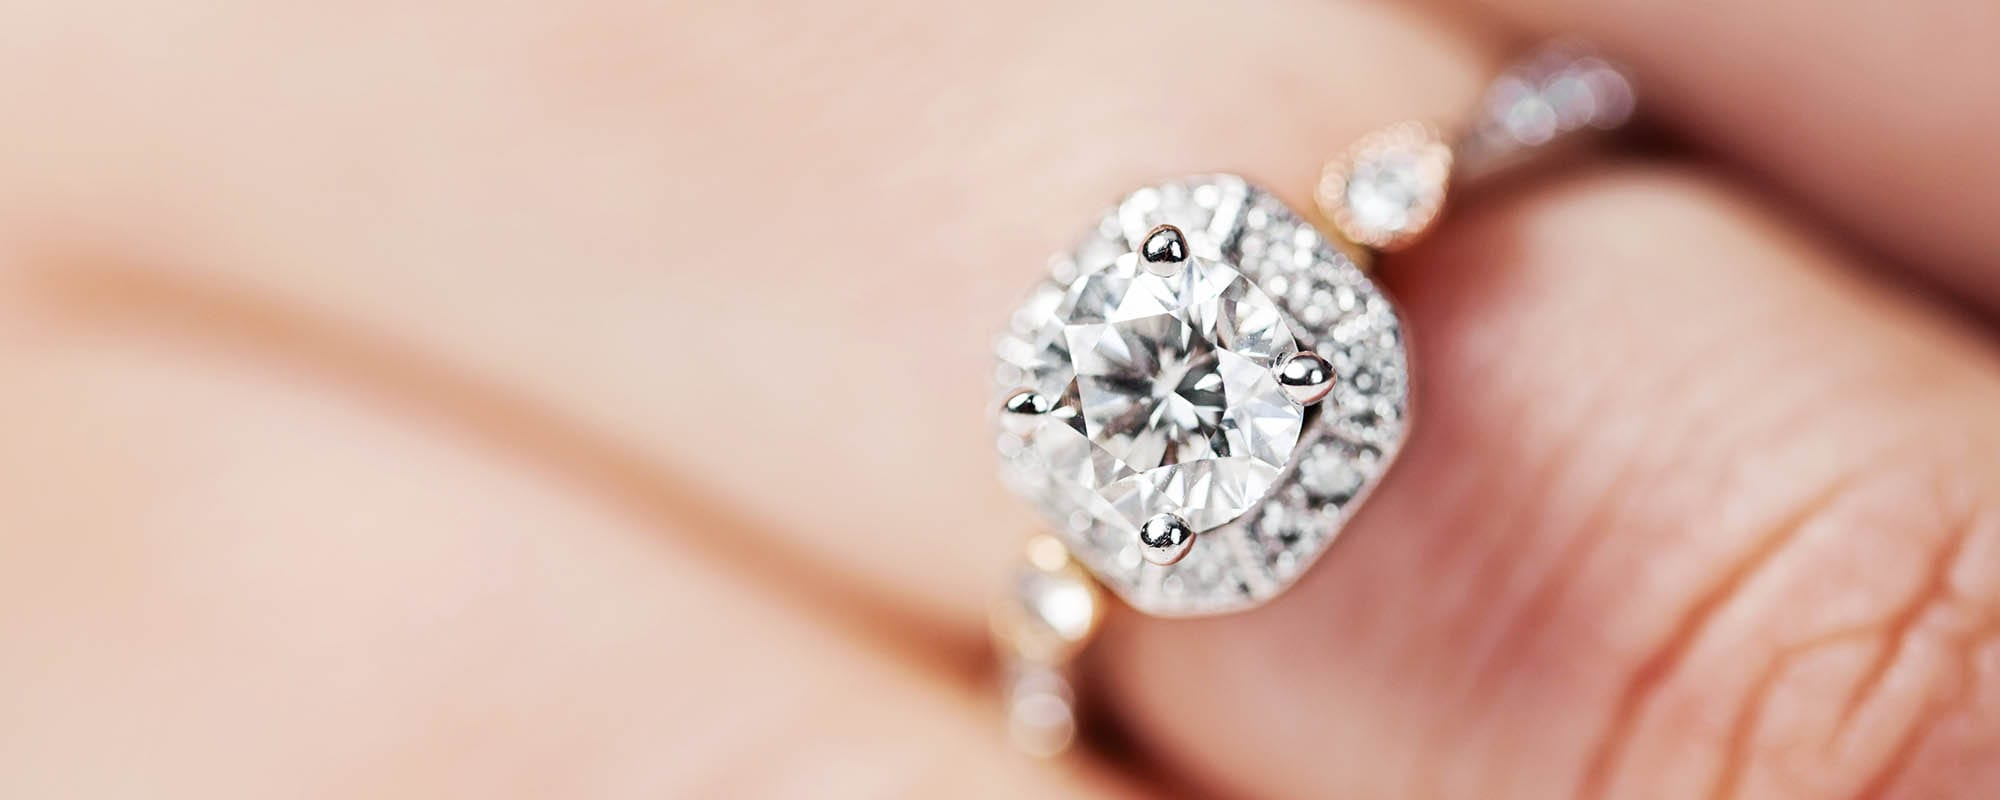 finger with diamond ring